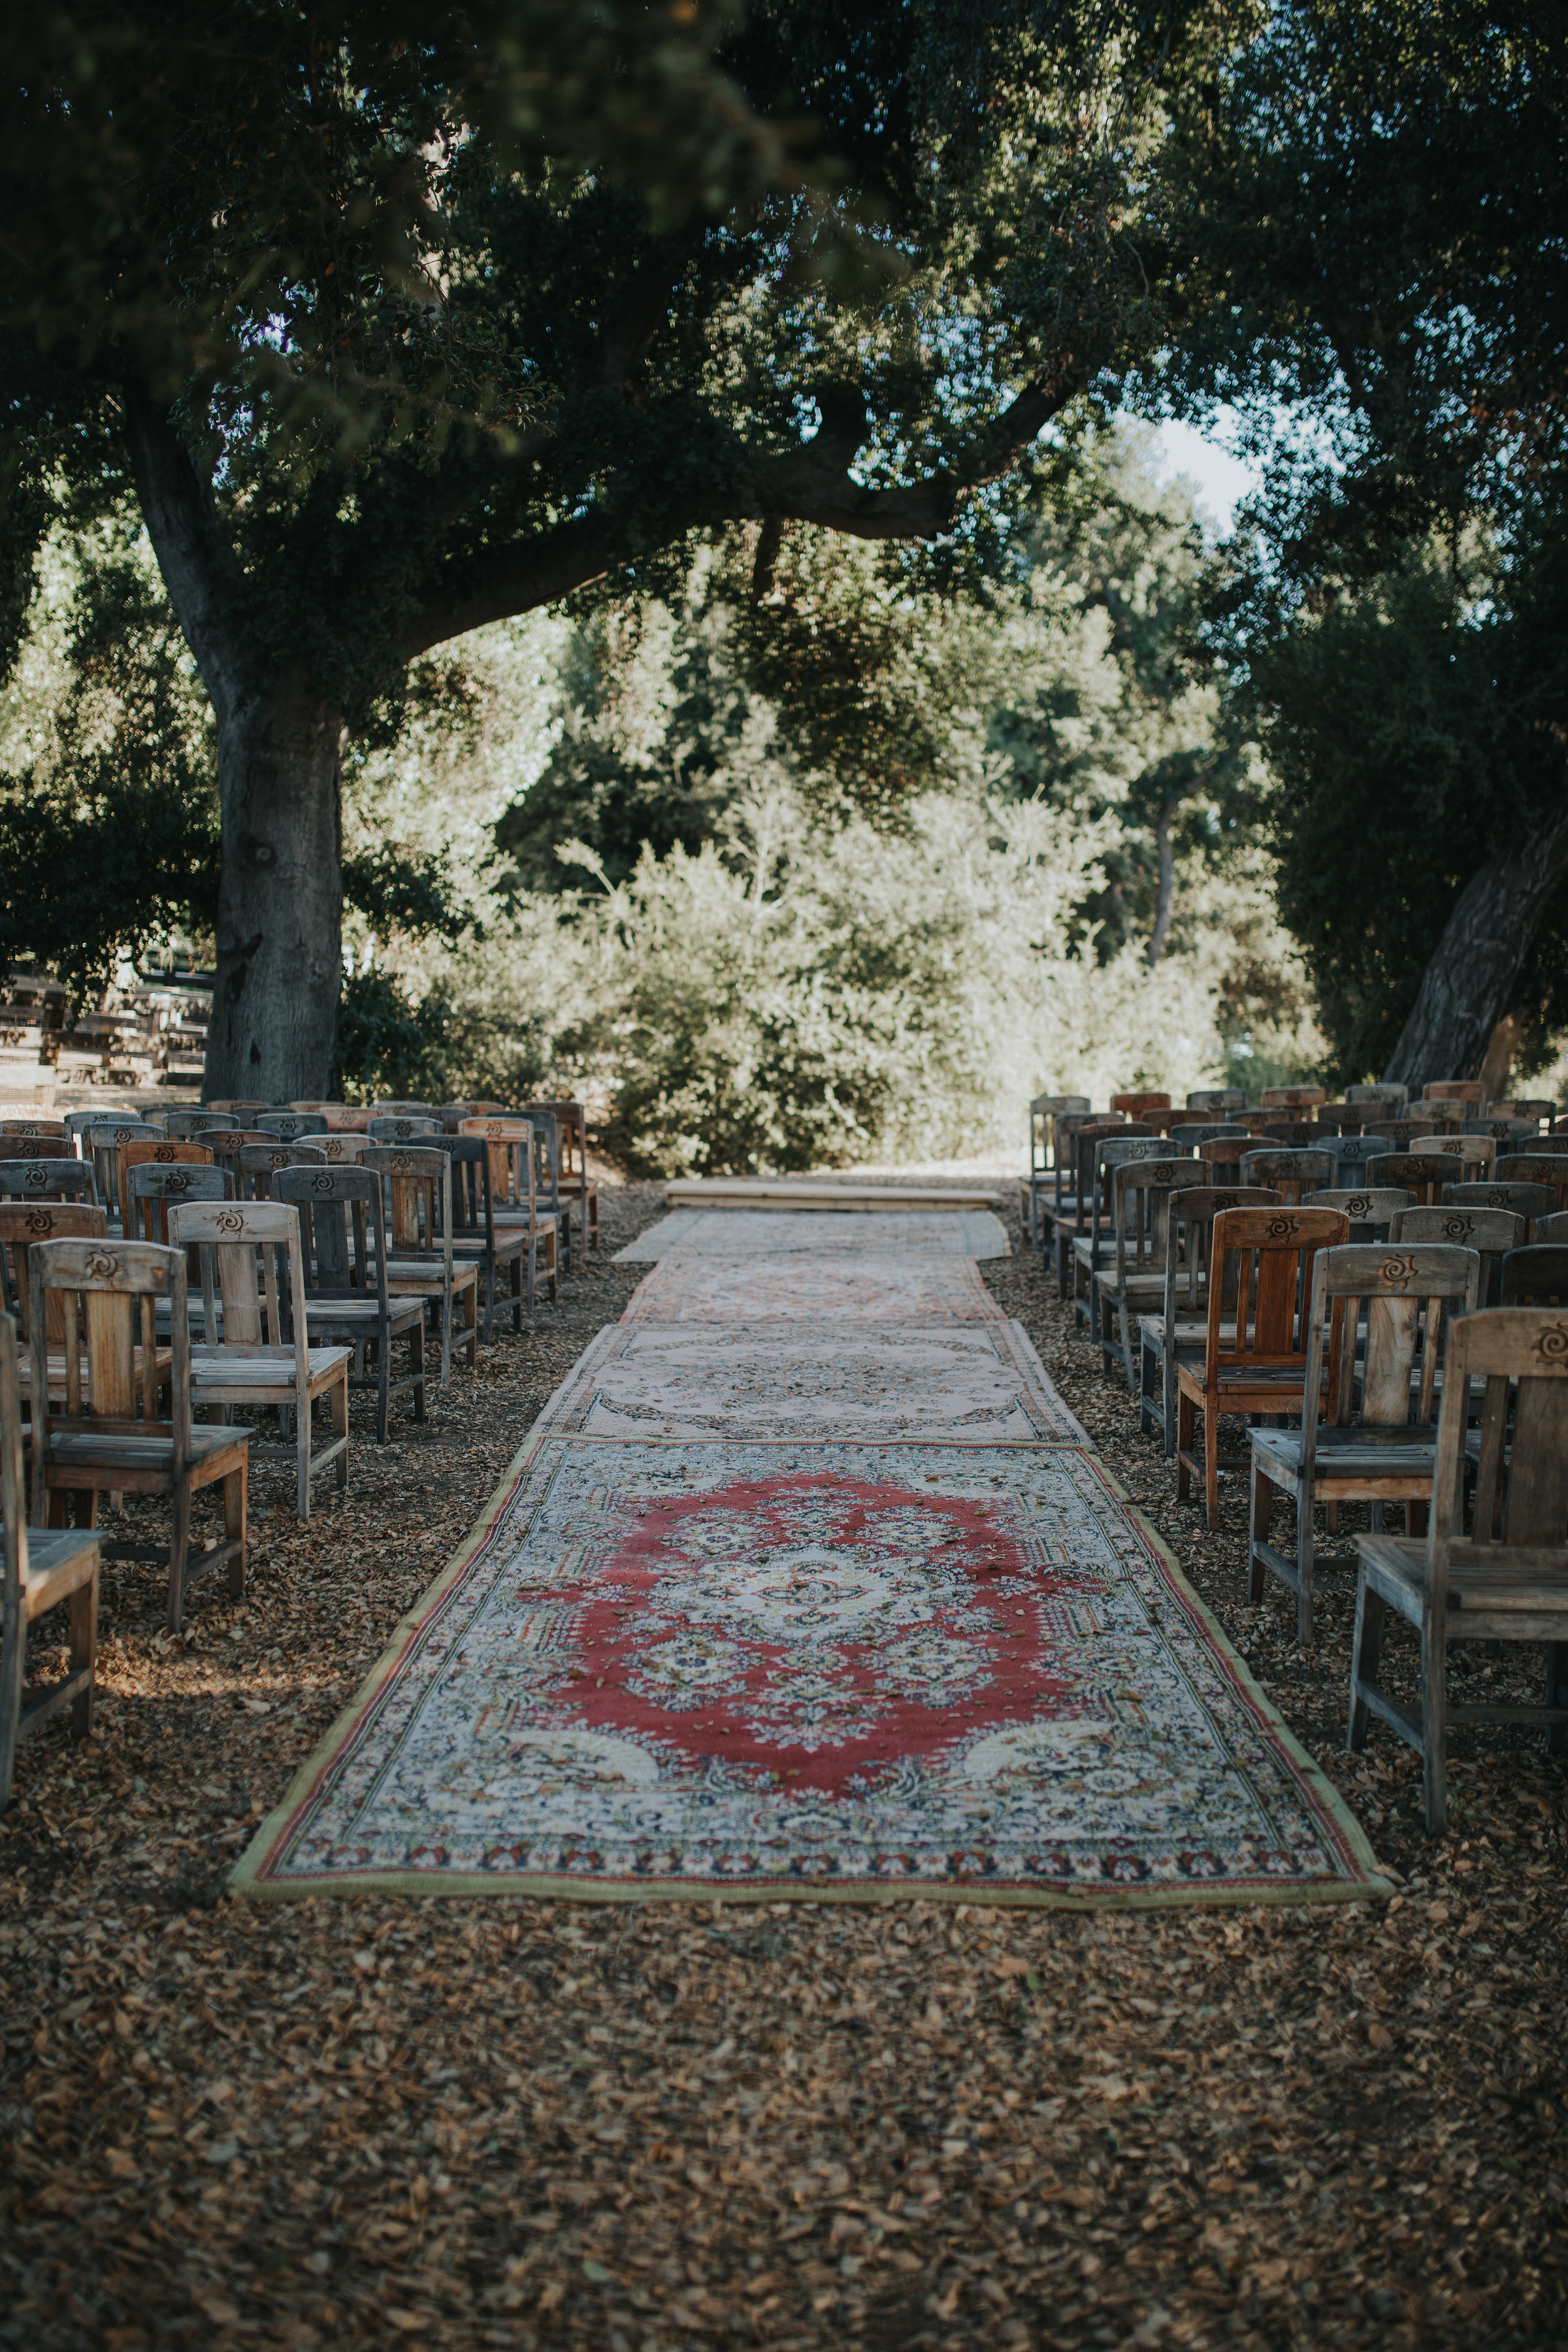 A wedding aisle made of vintage Persian carpets at a venue in Murrieta in the Temecula Valley. Chateau Adare is a private estate venue.